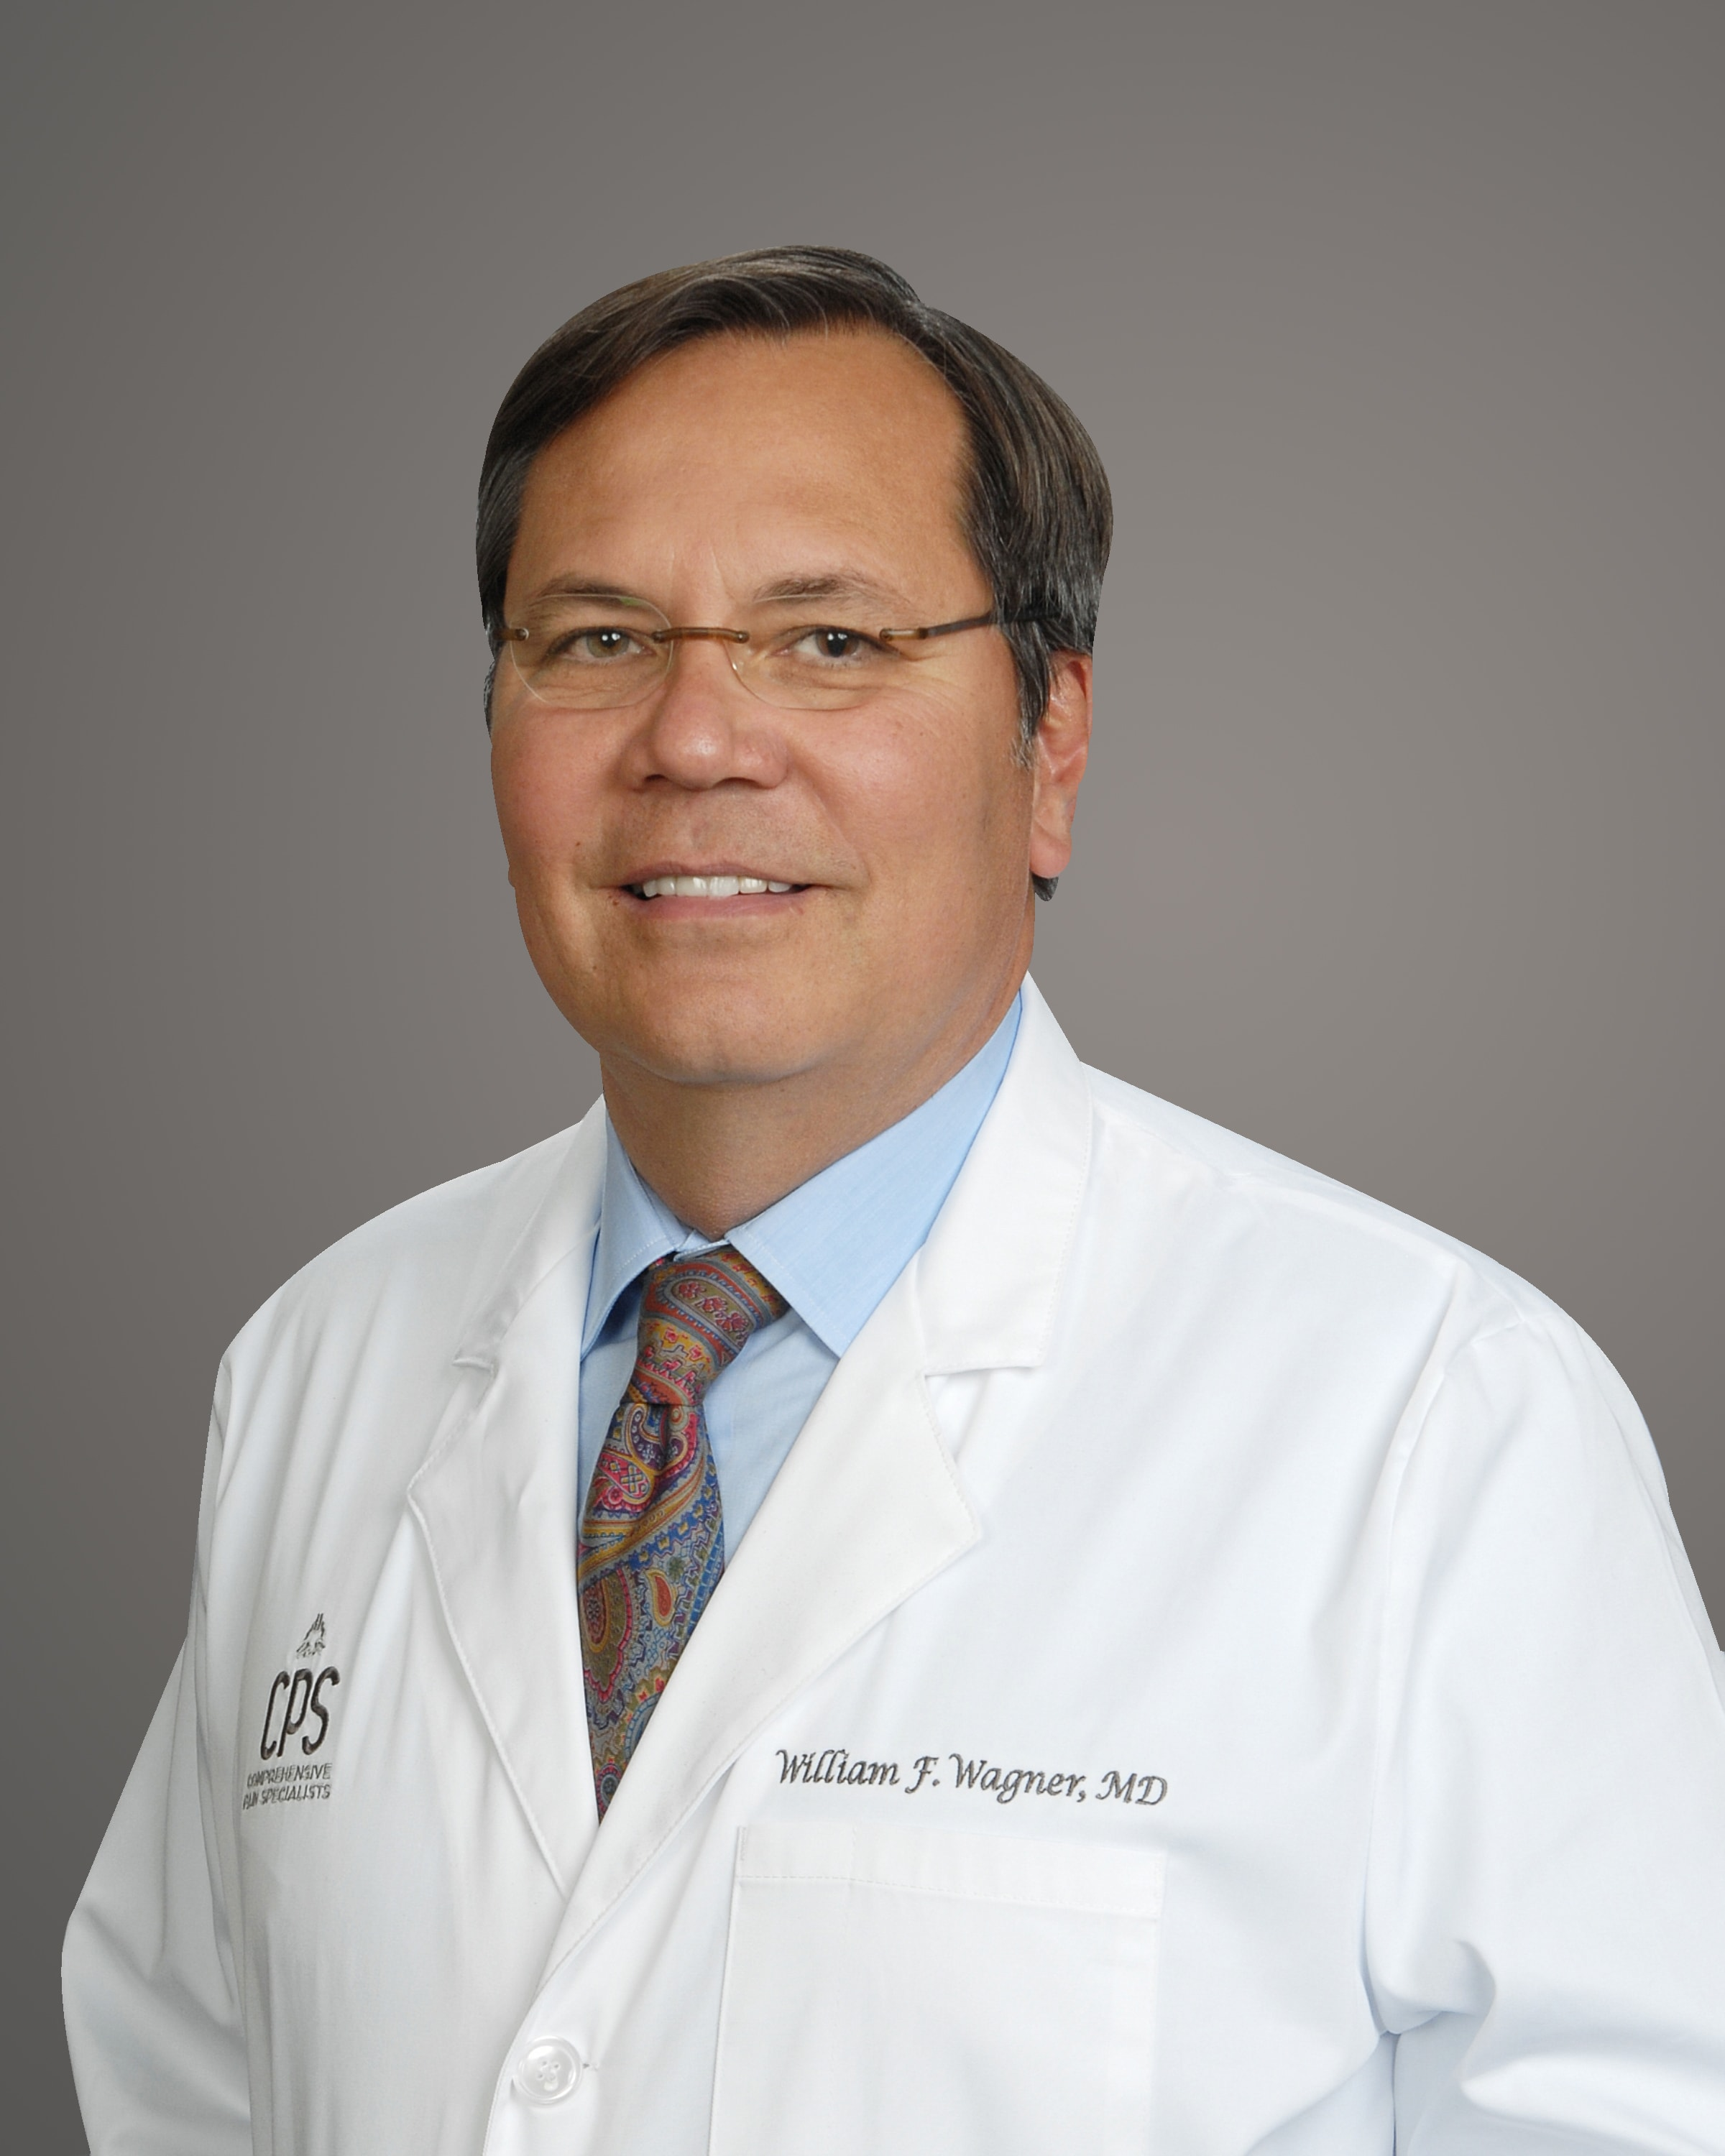 Dr. William Wagner, MD